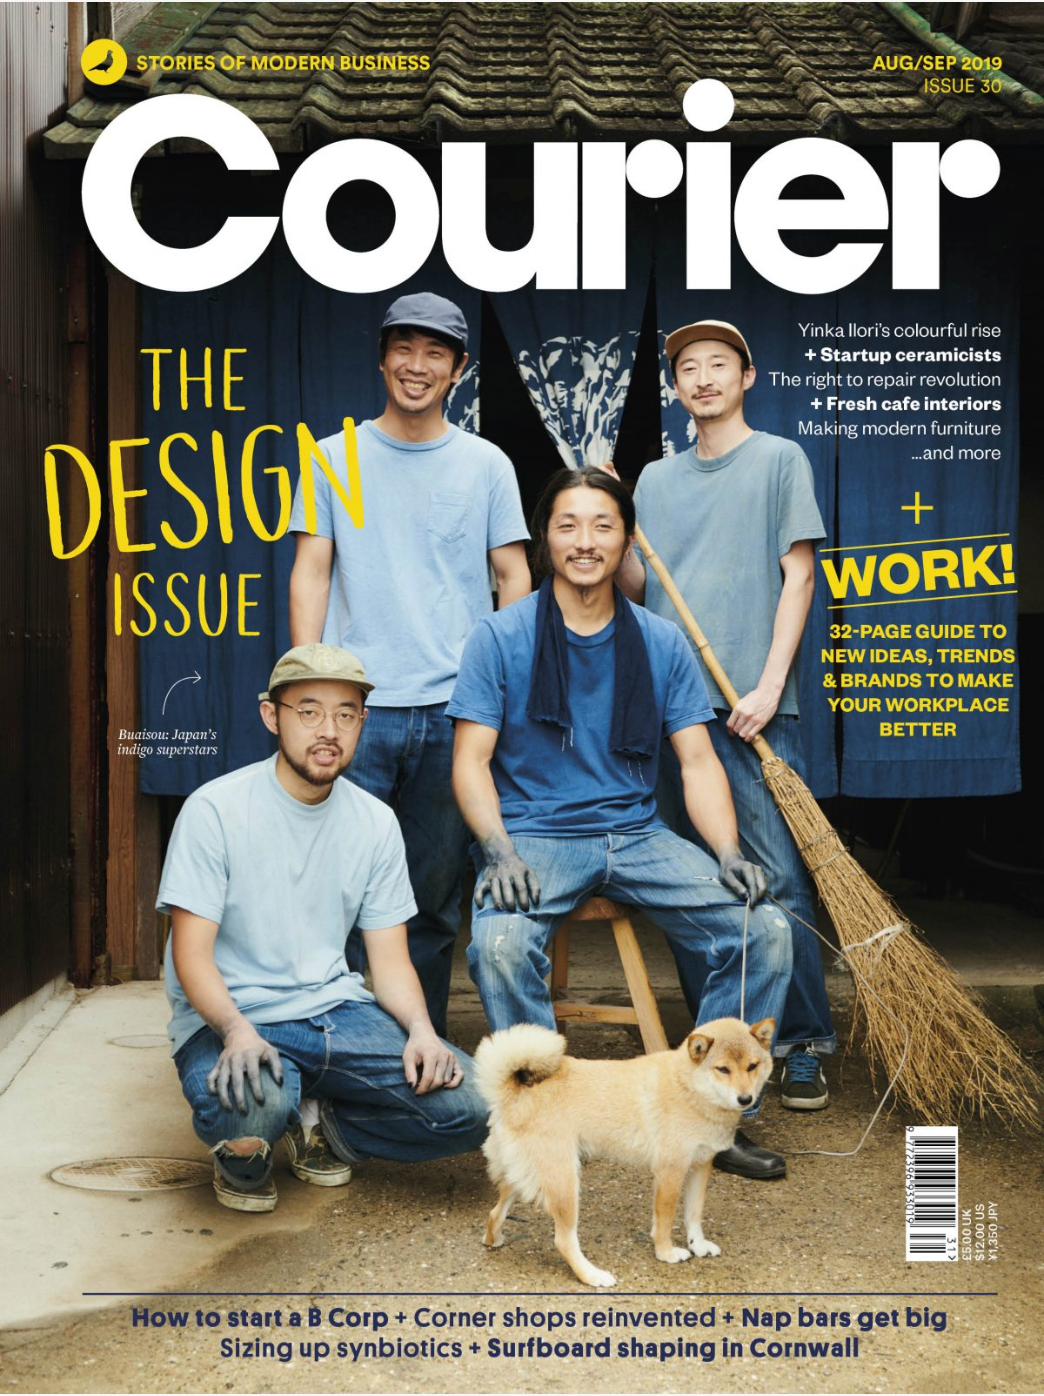 Courier Magazine, Issue 30 - The Library Project